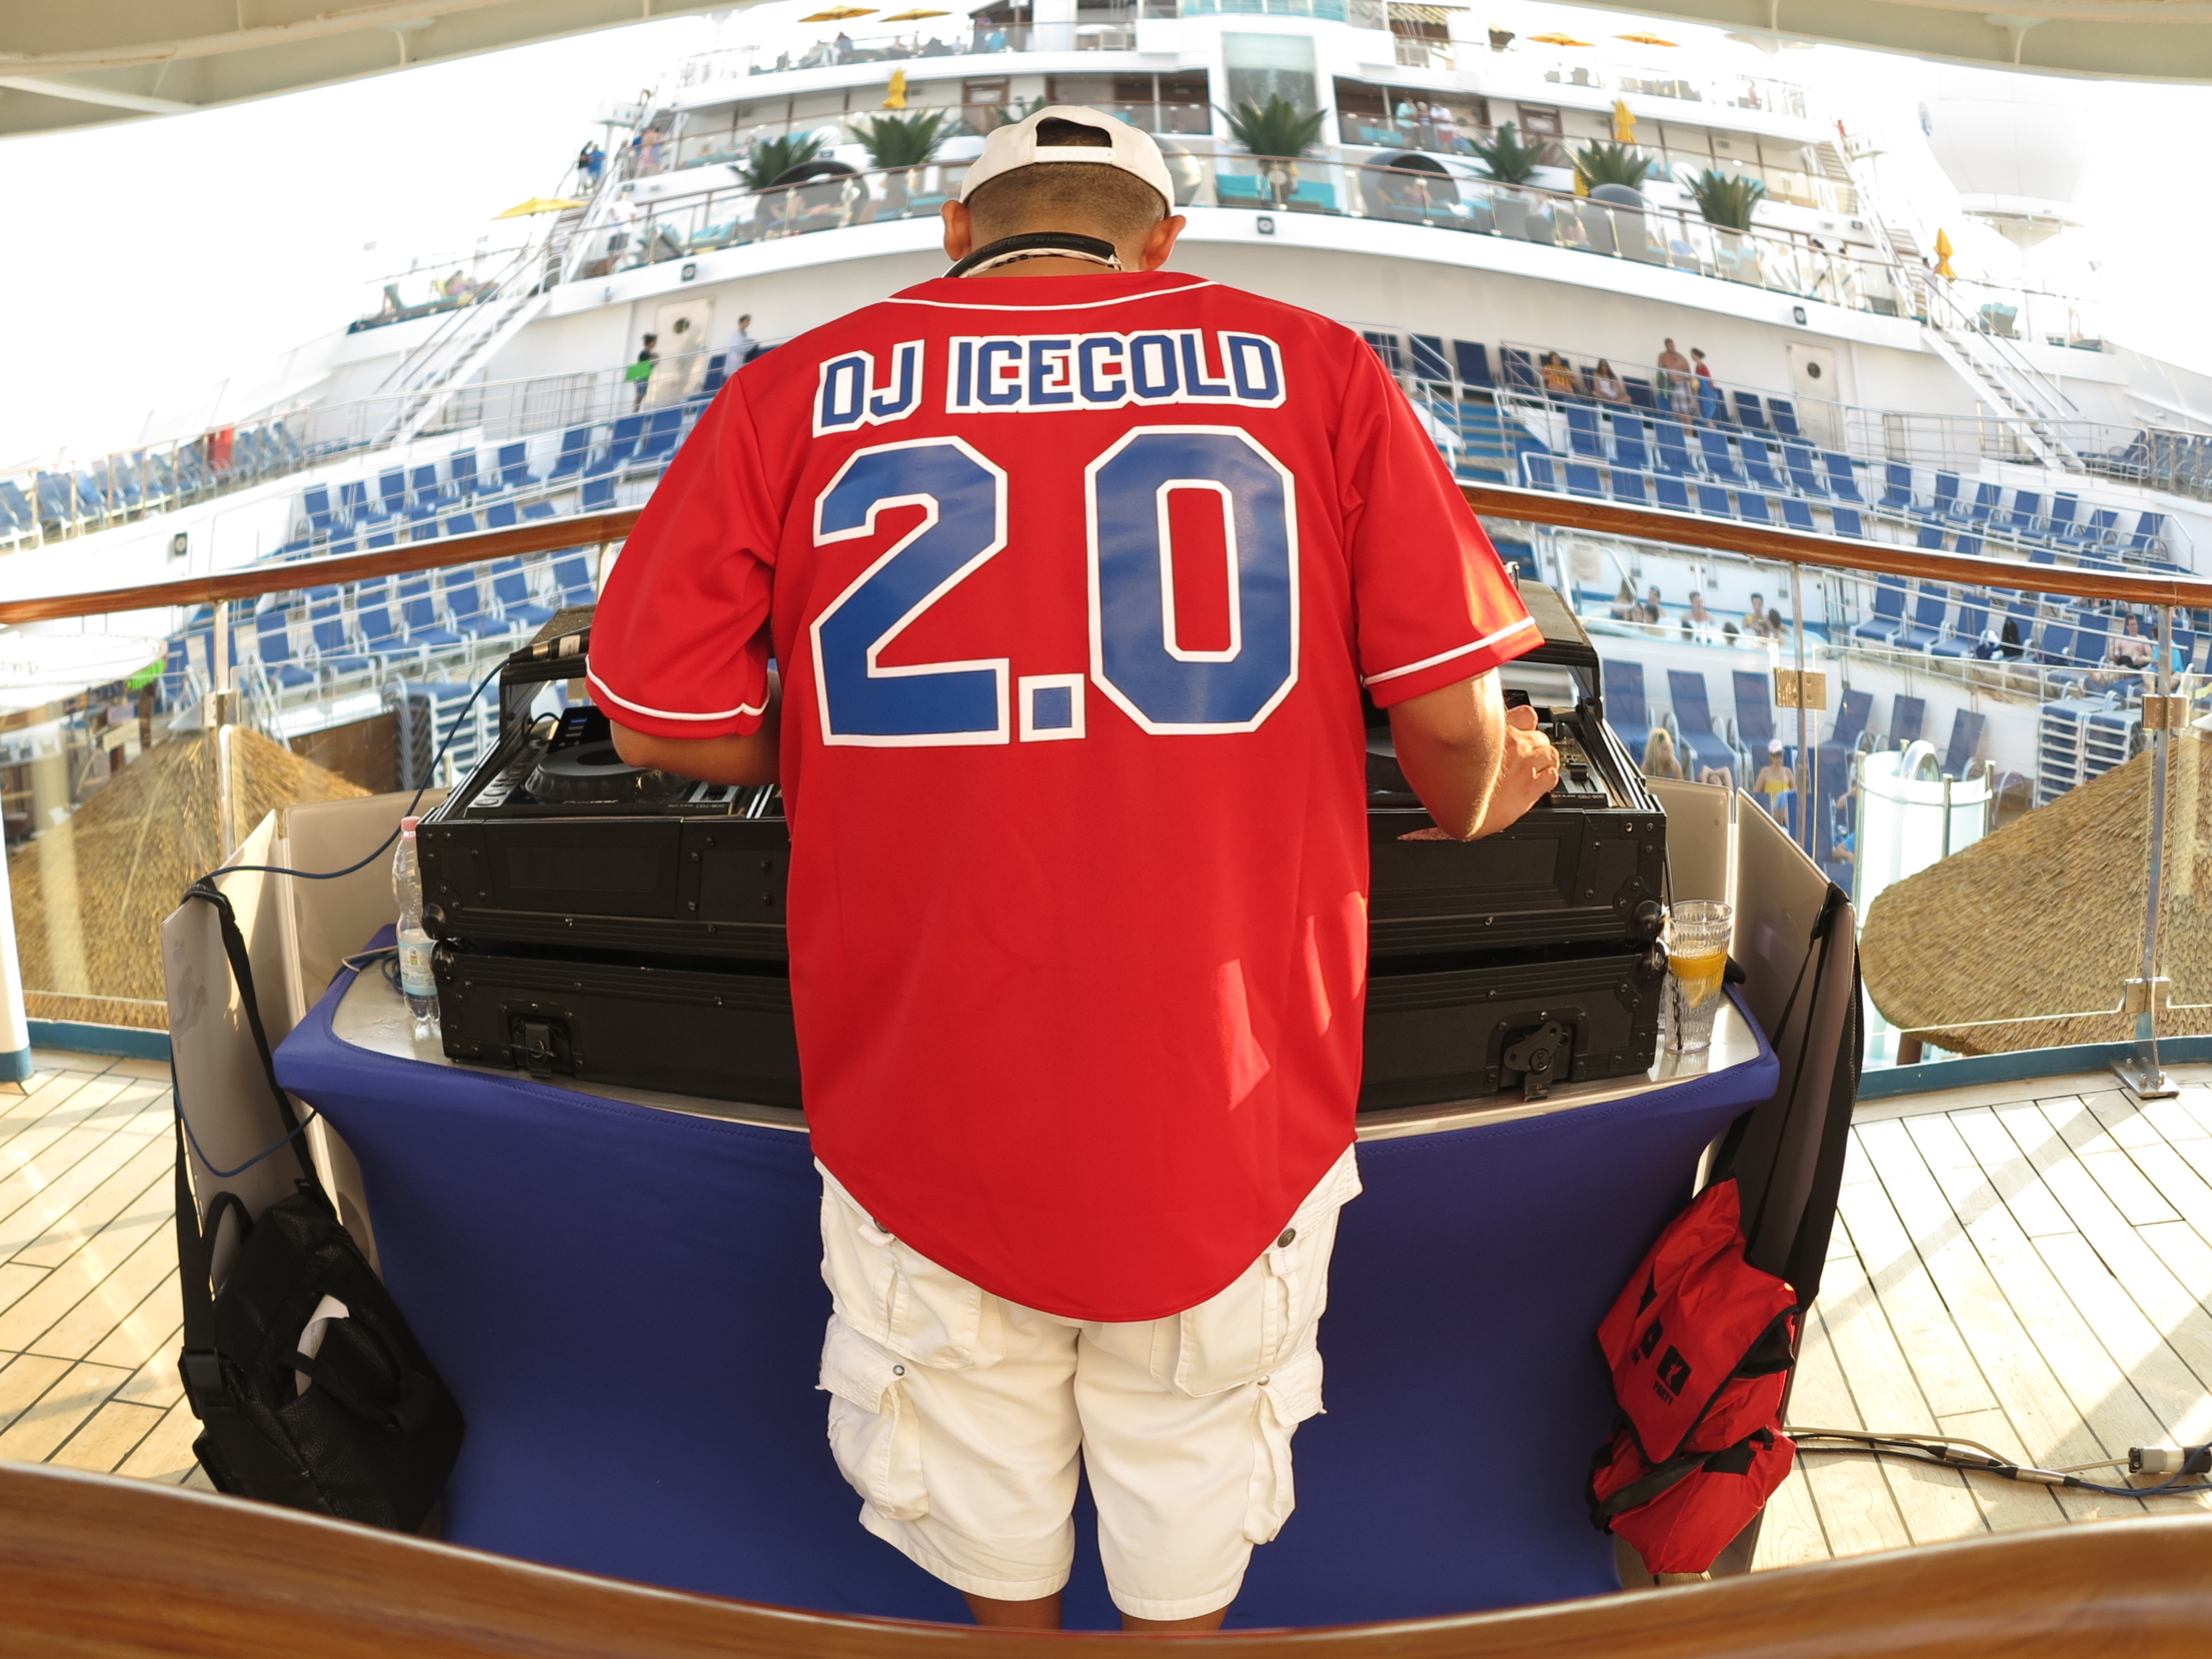 DJ Icecold on the deck(s) - photographed using fish eye lens effect